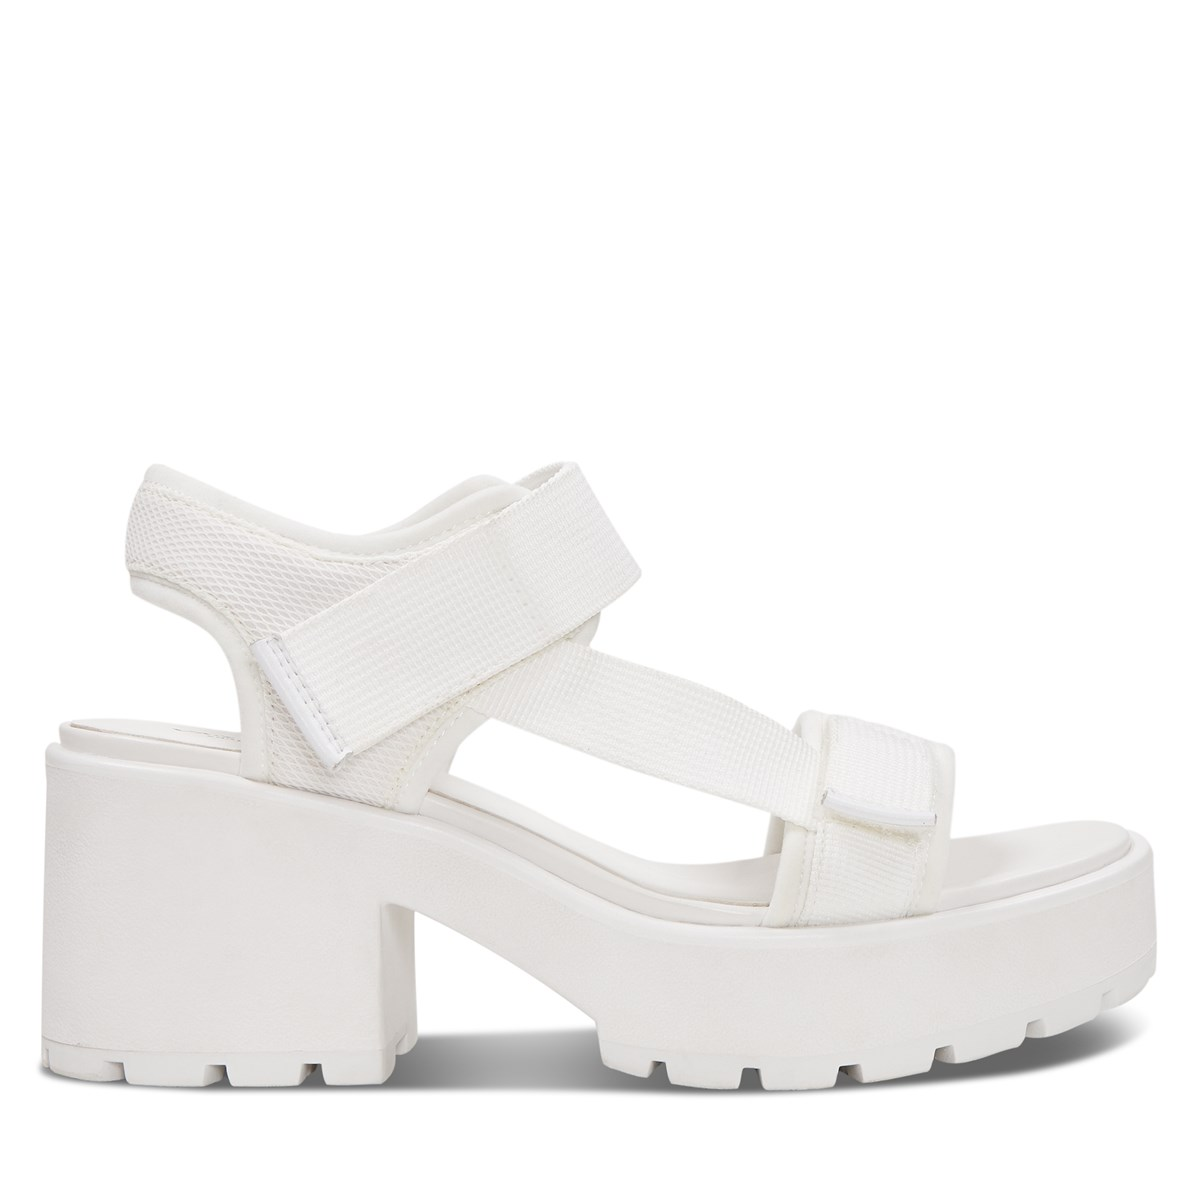 Women's Dioon Heeled Sandals in White